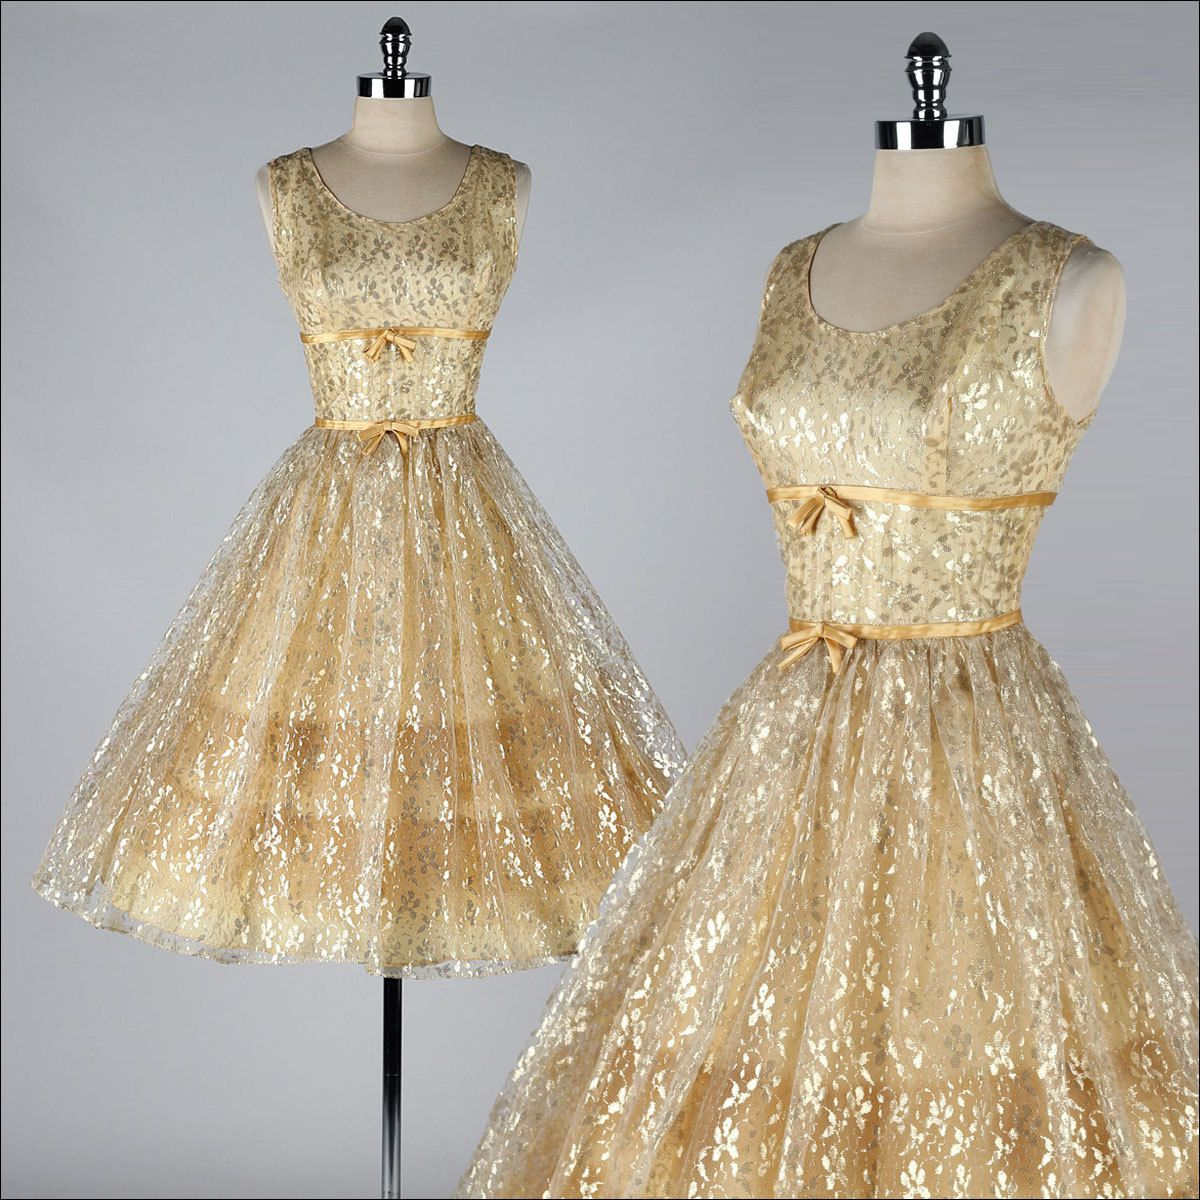 Vintage s dress metallic gold lace tulle cocktail dress